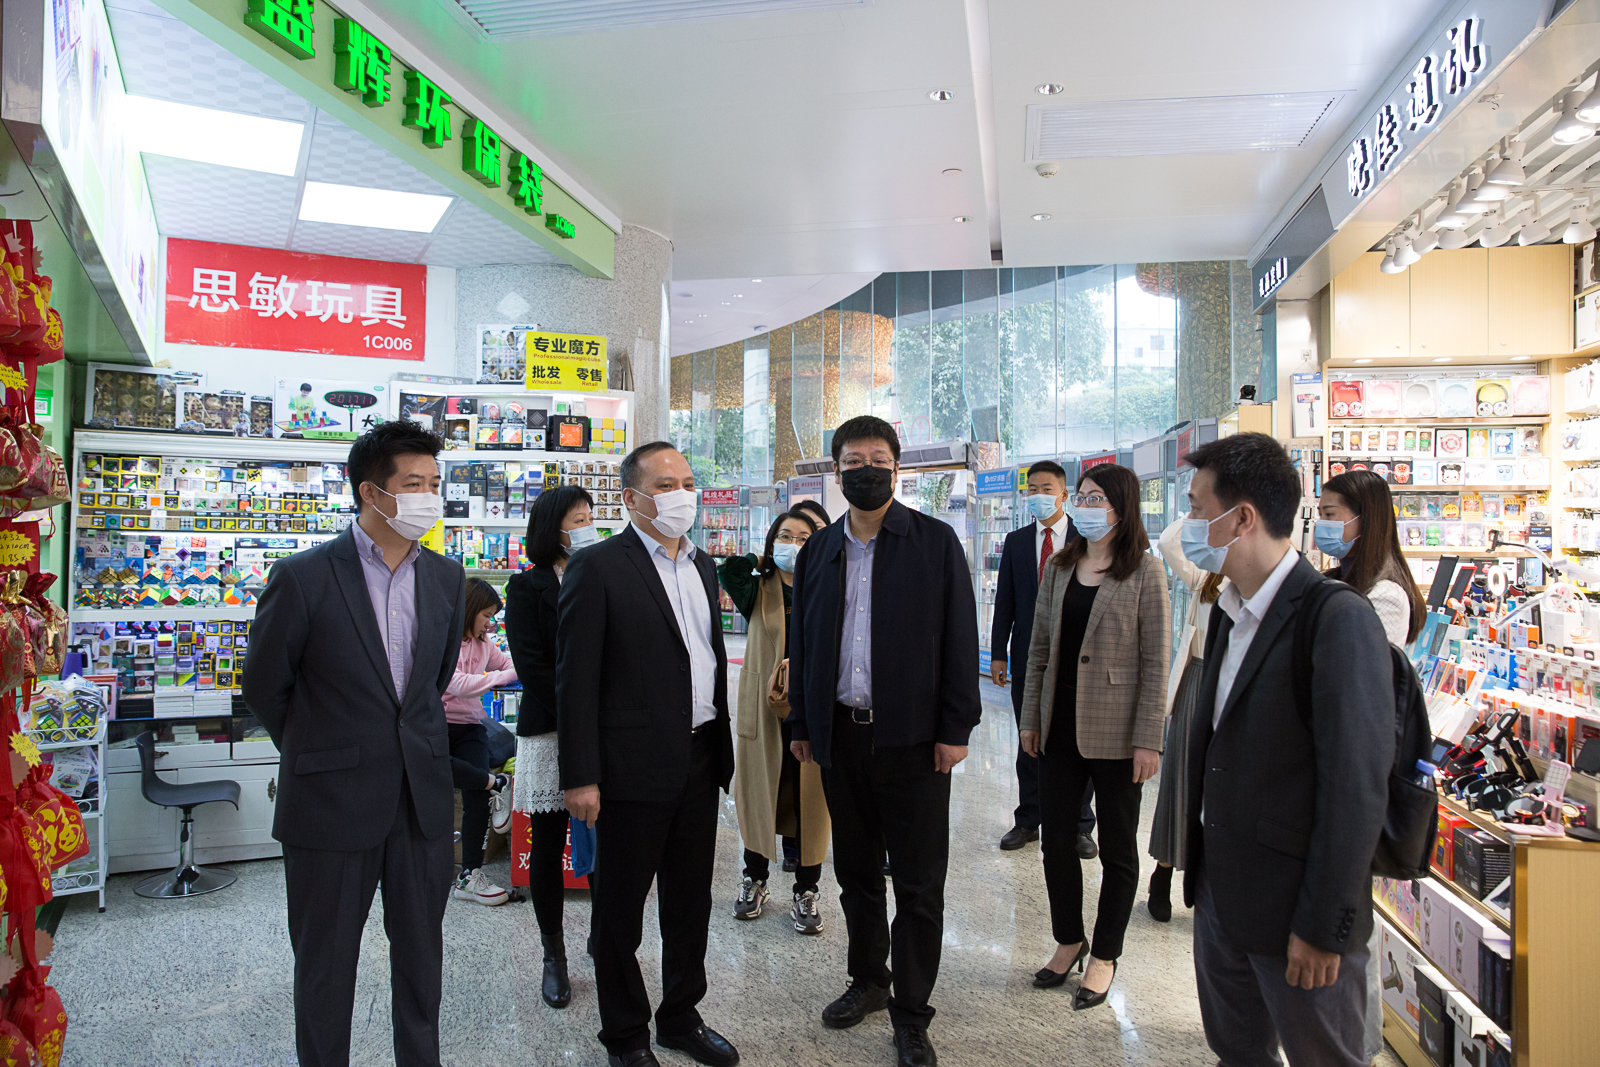 Li Gang, deputy director of the Department of circulation development of the Ministry of Commerce, visited Wanling Plaza for investigation and guidance